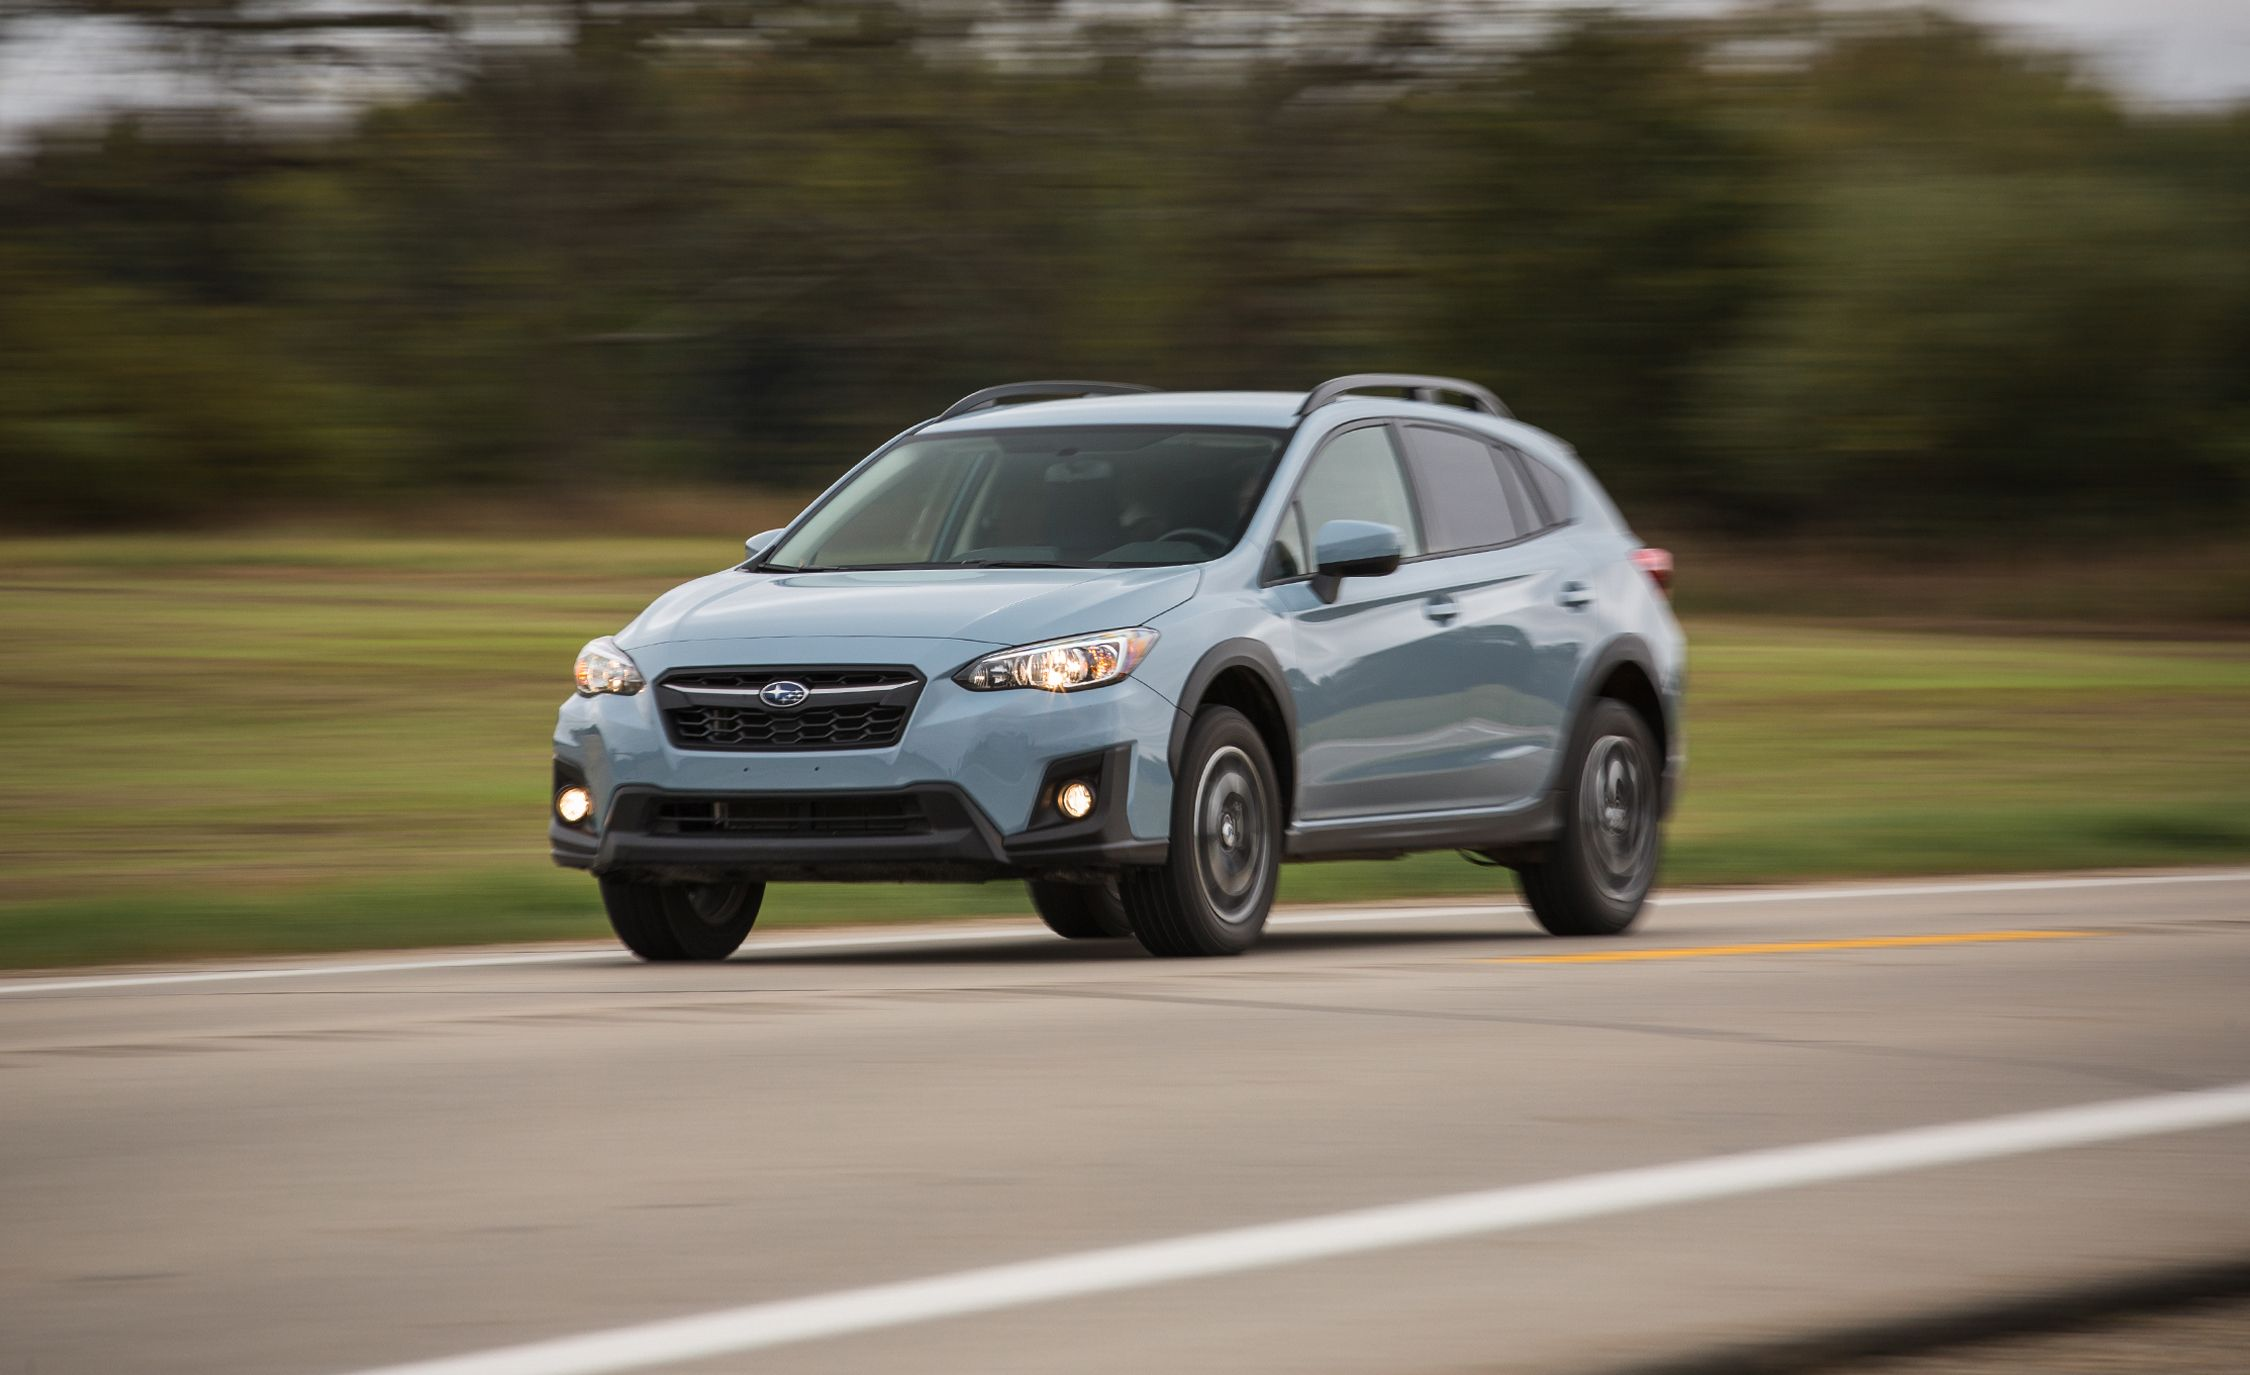 2018 Subaru Crosstrek Manual